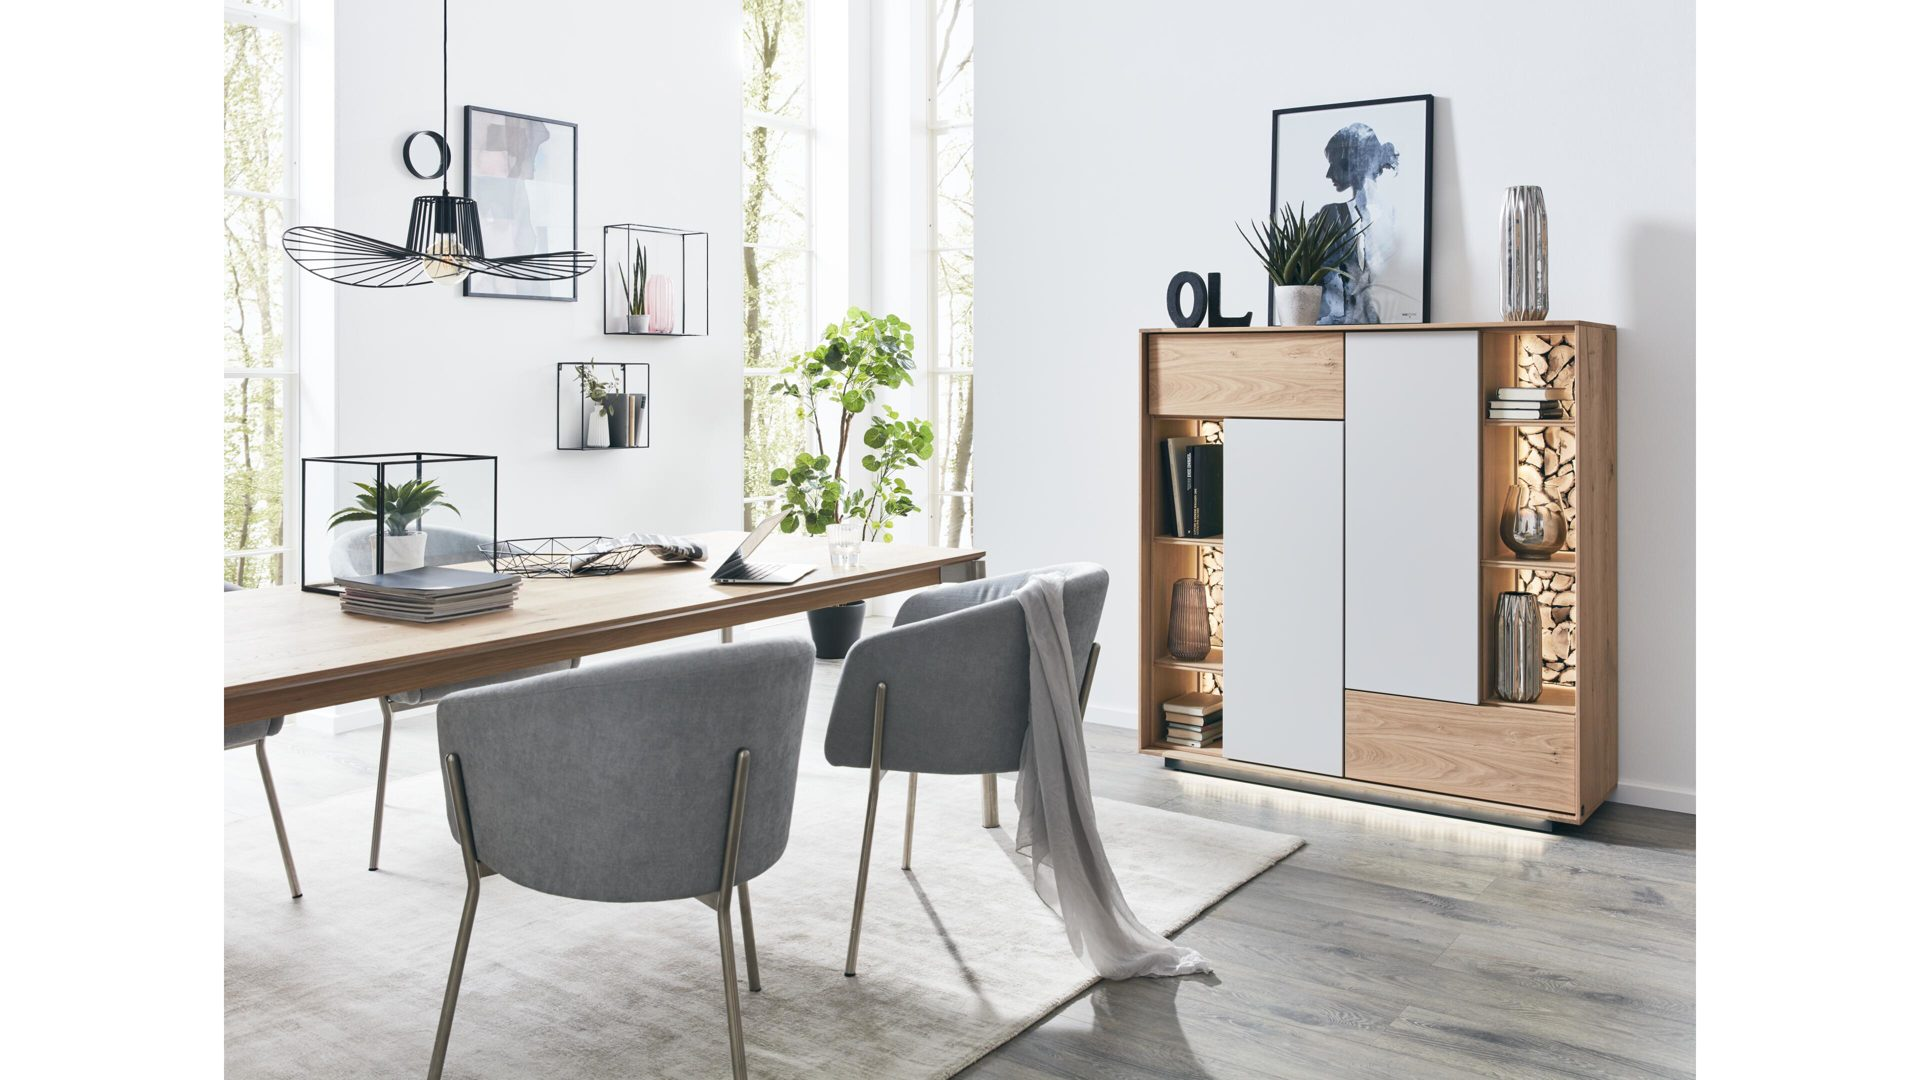 Esszimmer Weiß Holz Interliving Esszimmer Serie 5602 Highboard Helle Wildeiche